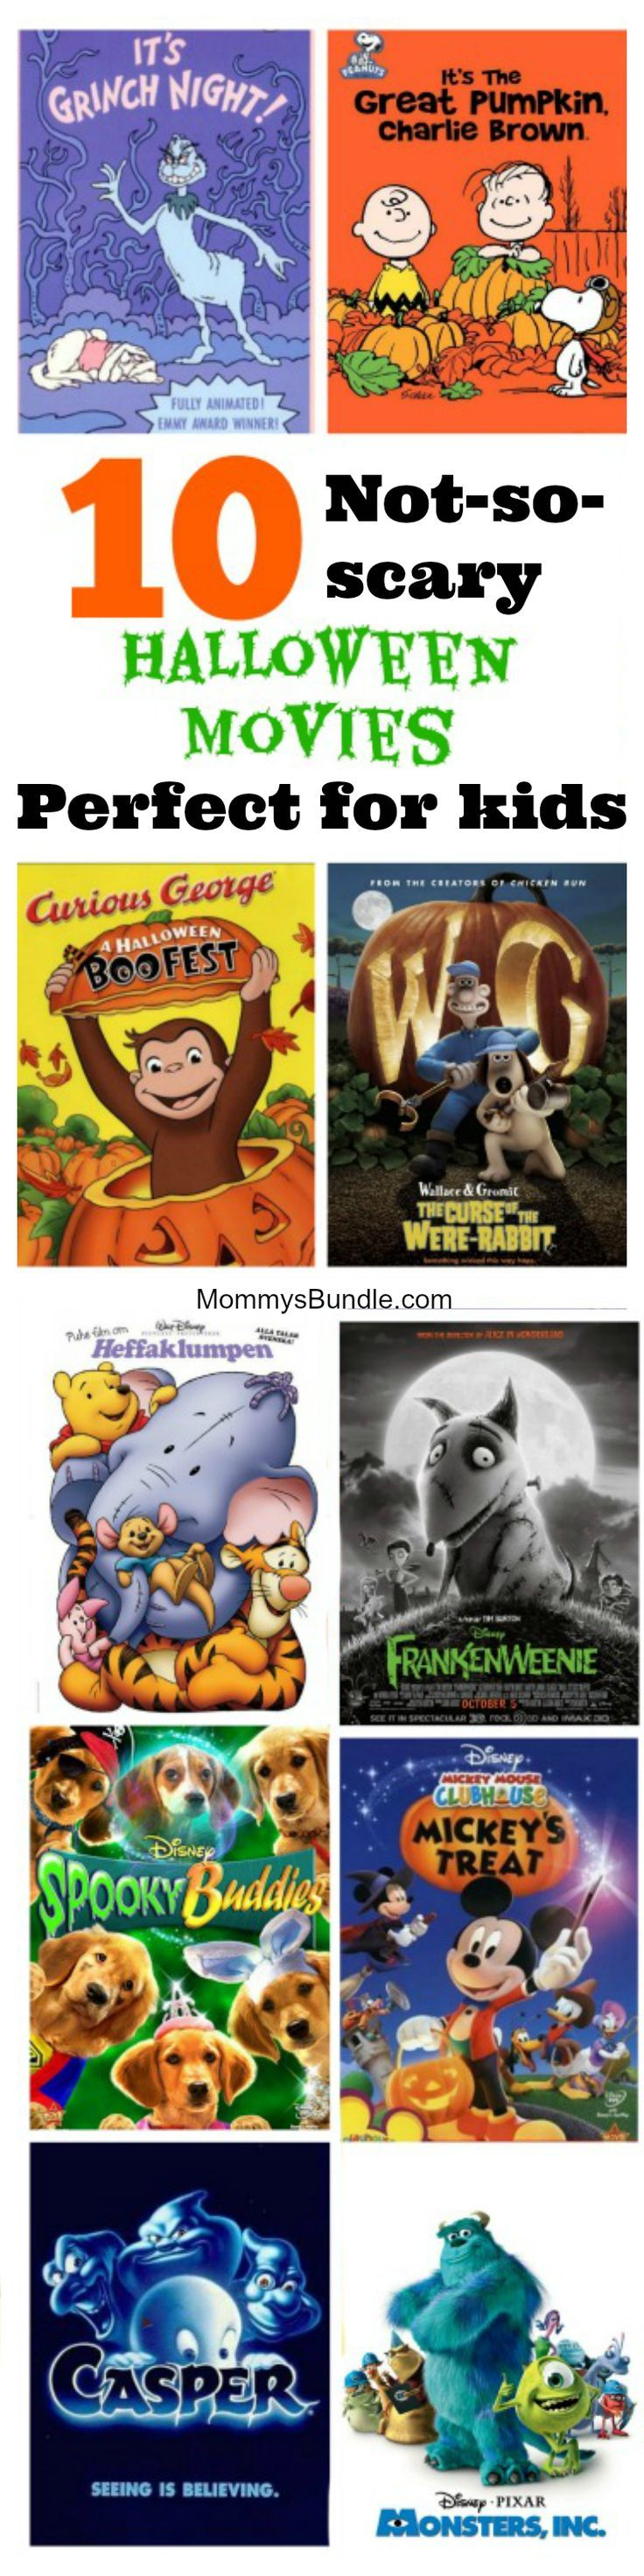 10 halloween movies perfect for little kids - Top Kids Halloween Movies